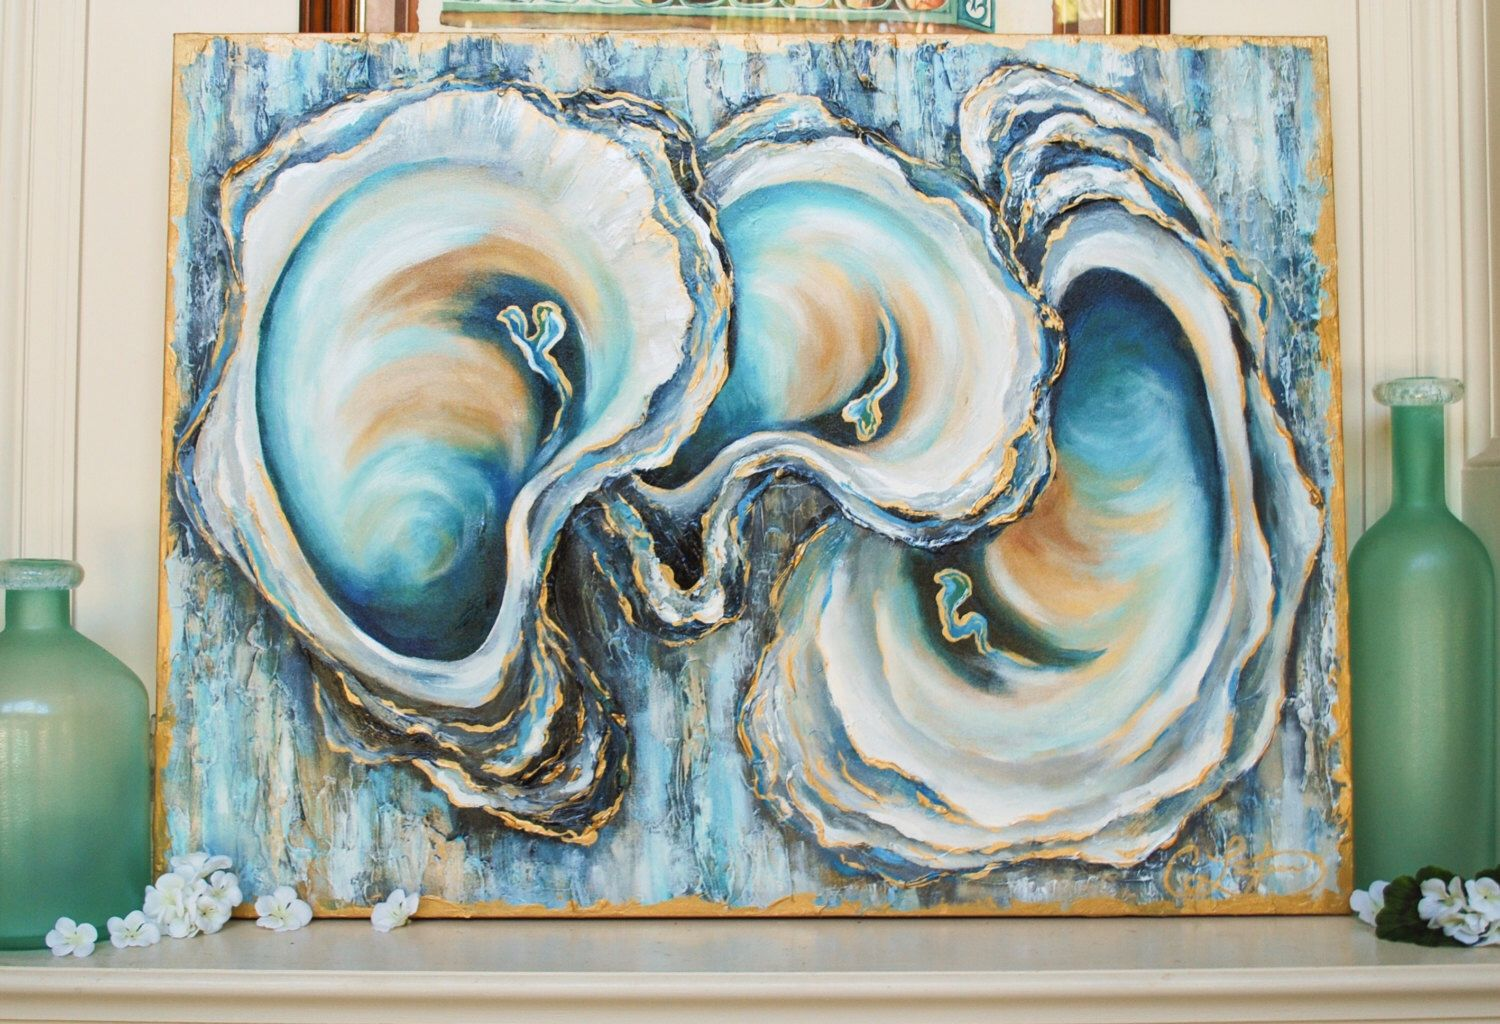 40x30 Oyster Painting Deposit By Caseylangteauart On Etsy Https Www Etsy Com Listing 484973023 40x30 Oyster Painting D Painting Louisiana Art Canvas Painting